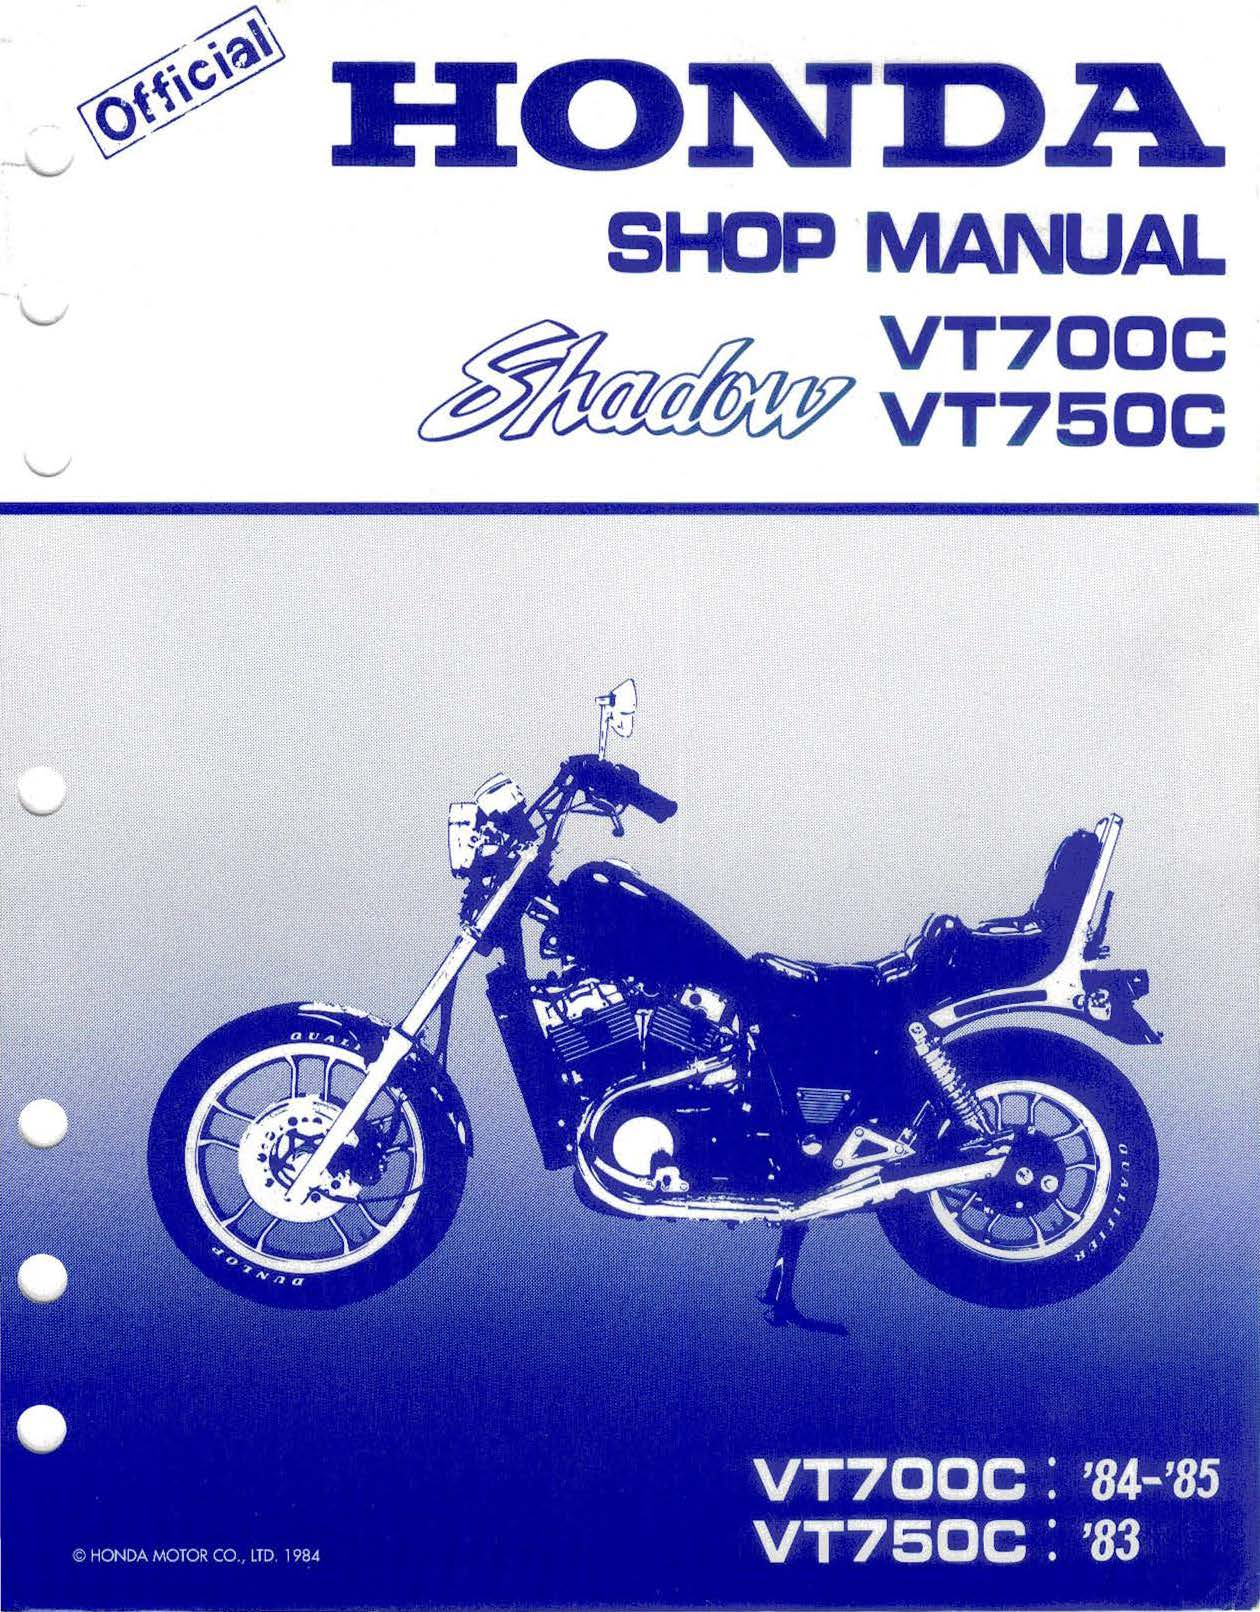 workshopmanual vt750c 1983 19042017 1641